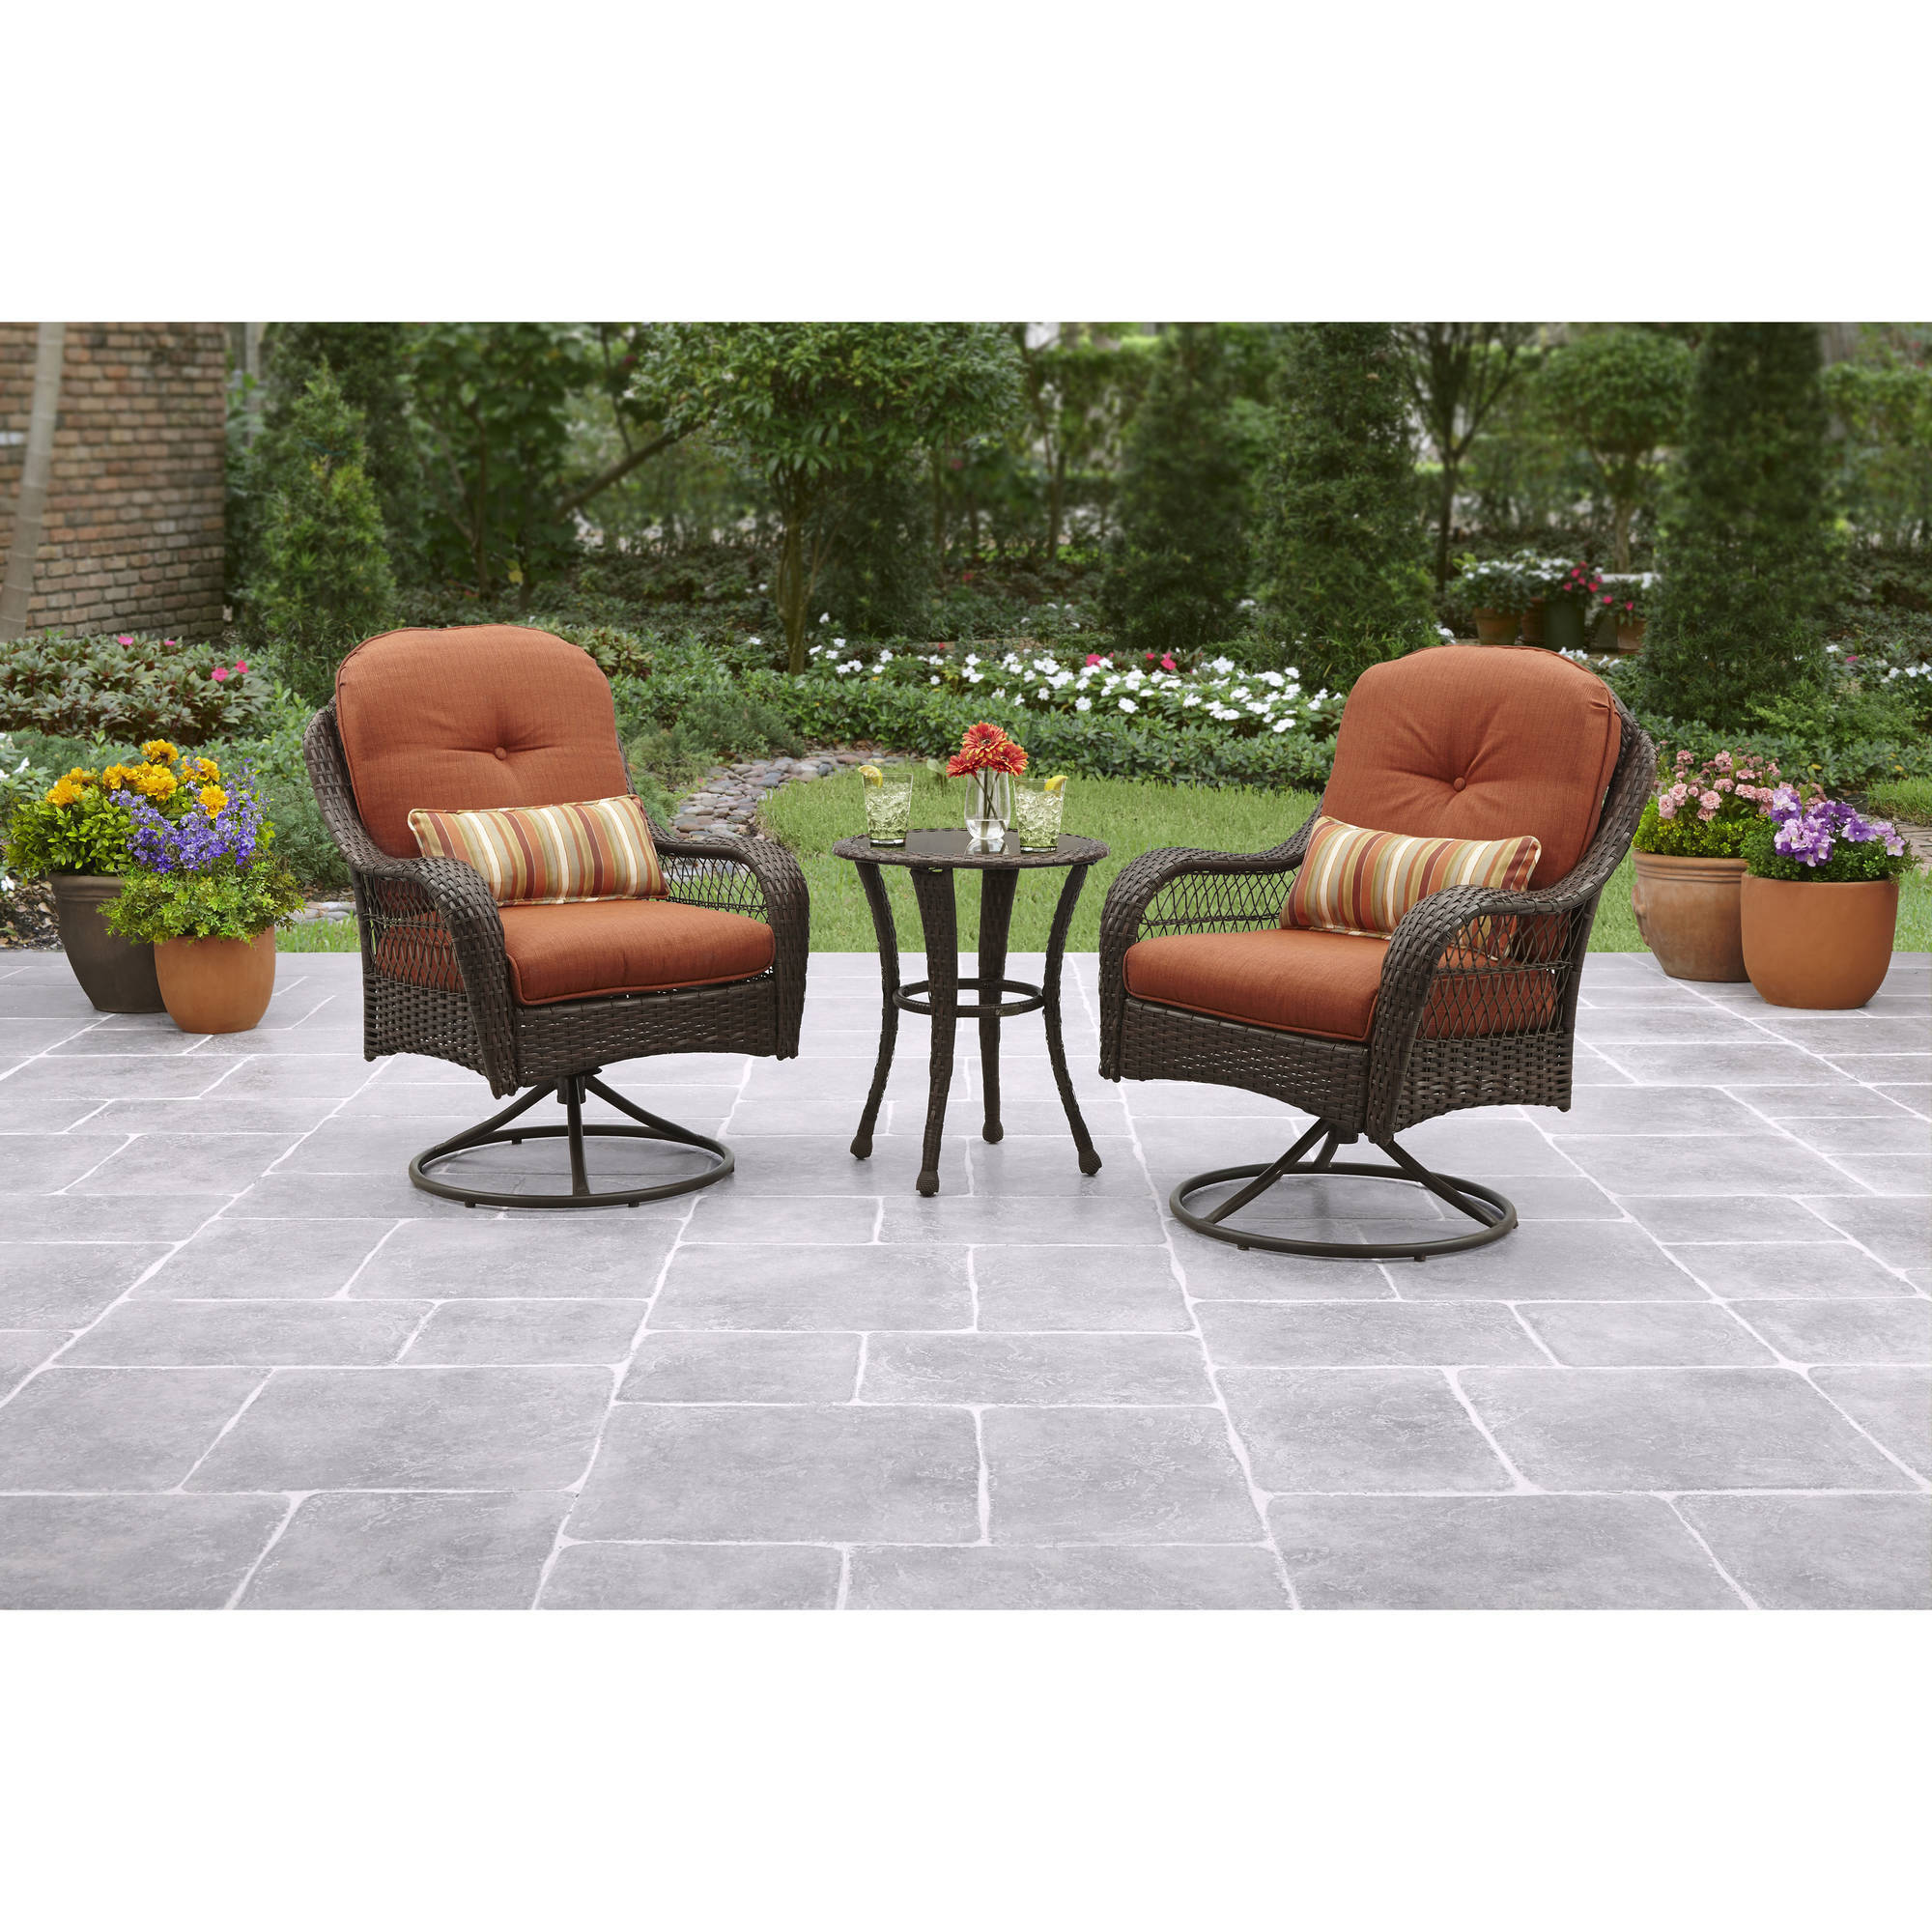 Better Homes and Gardens Azalea Ridge 3 Piece Outdoor